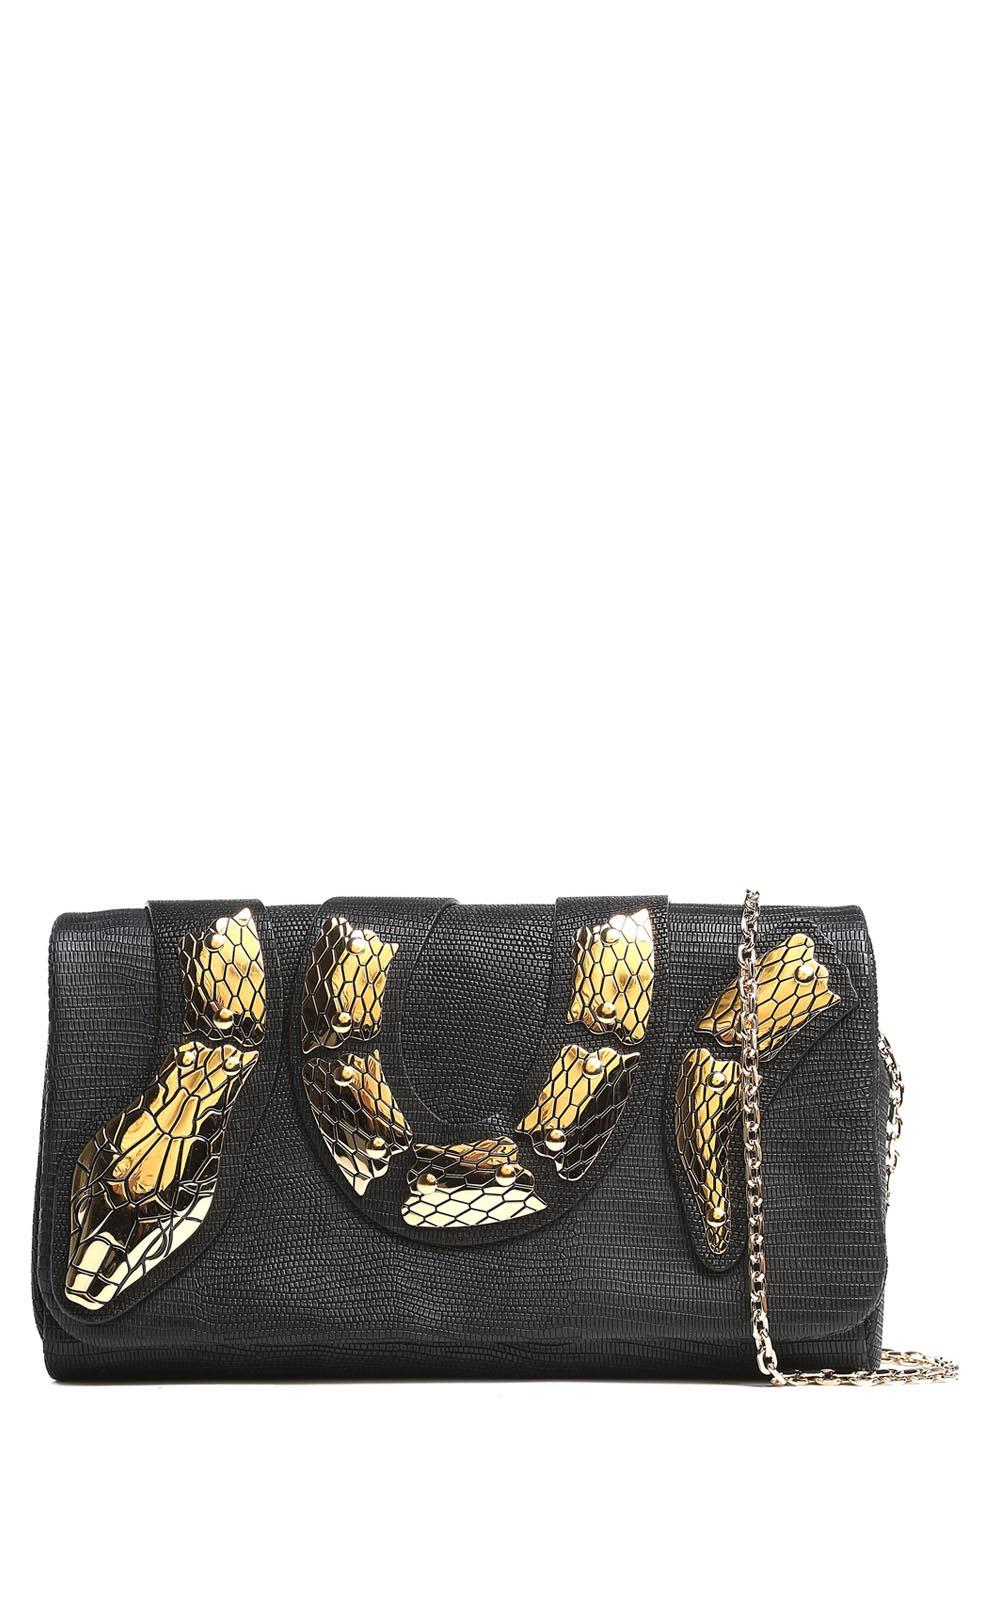 RED Valentino Sin Snake-print Leather Clutch